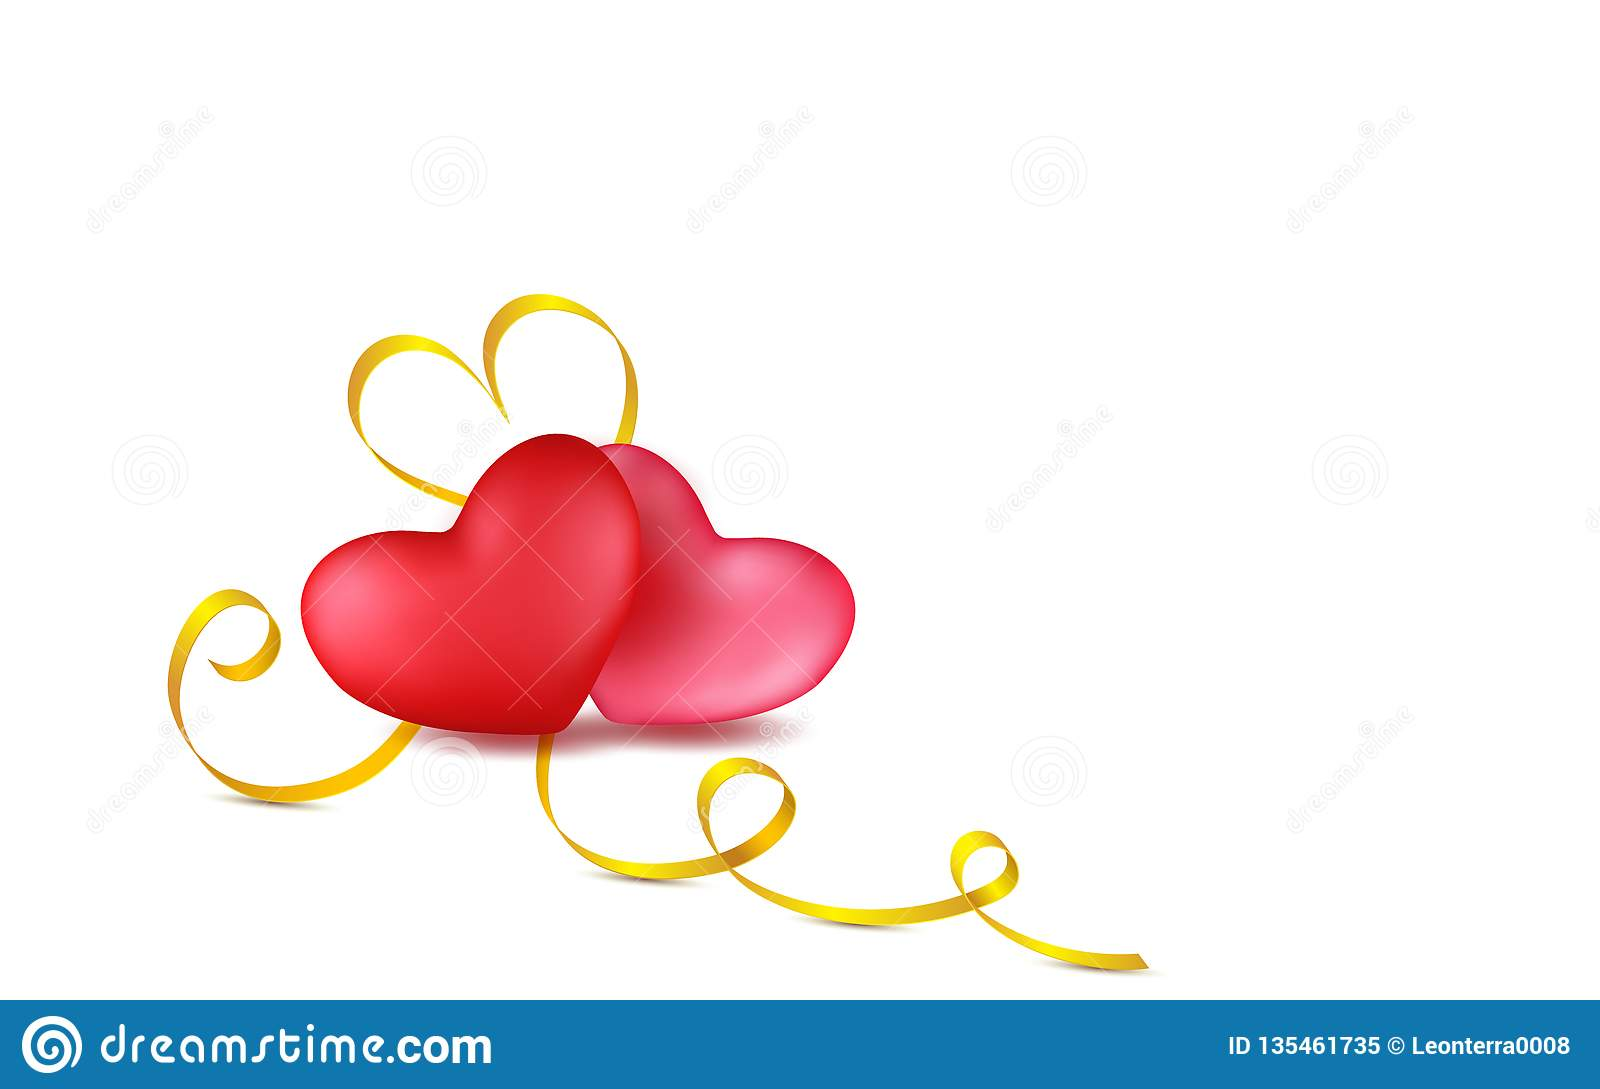 Couple red, rose hearts with golden calligraphy stripe. Isolated objects. Valentines day greeting card design in 3d style on white